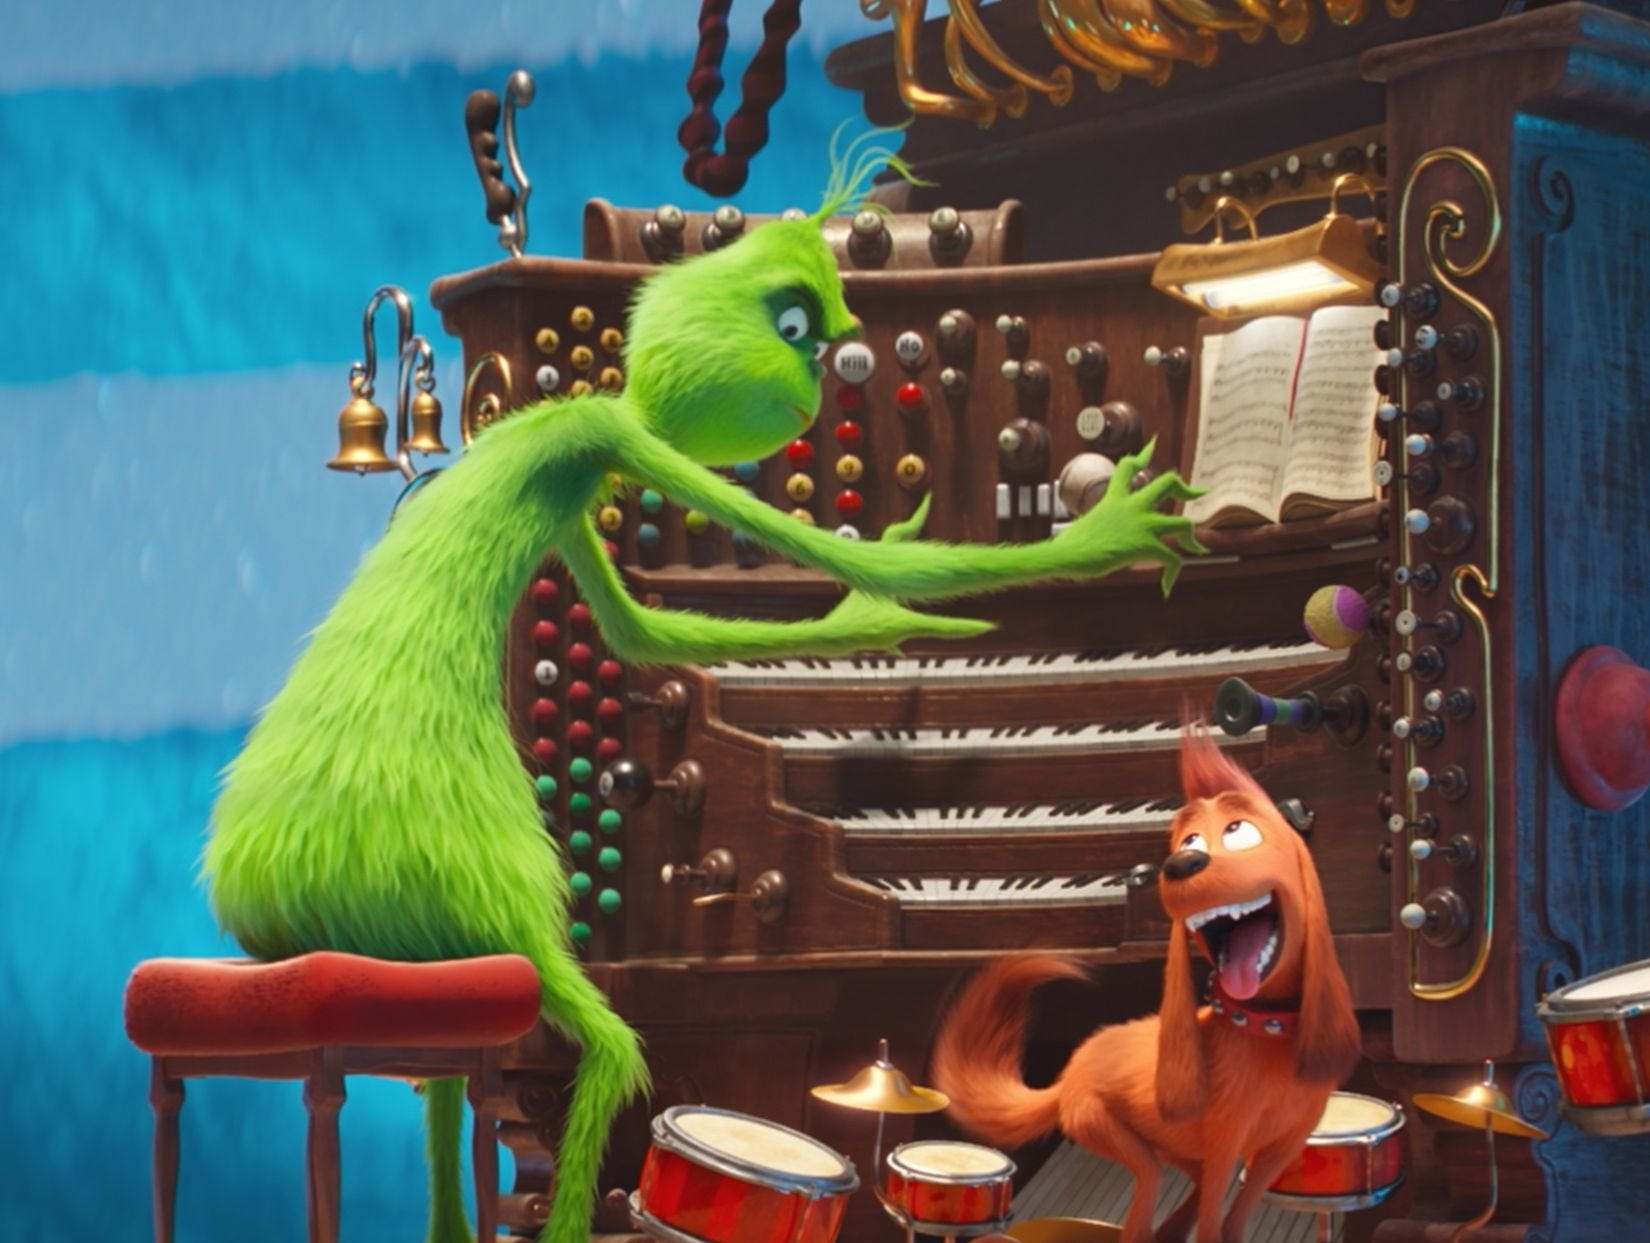 The Grinch (voiced by Benedict Cumberbatch) is not solo on the organ as Max joins in on drums.